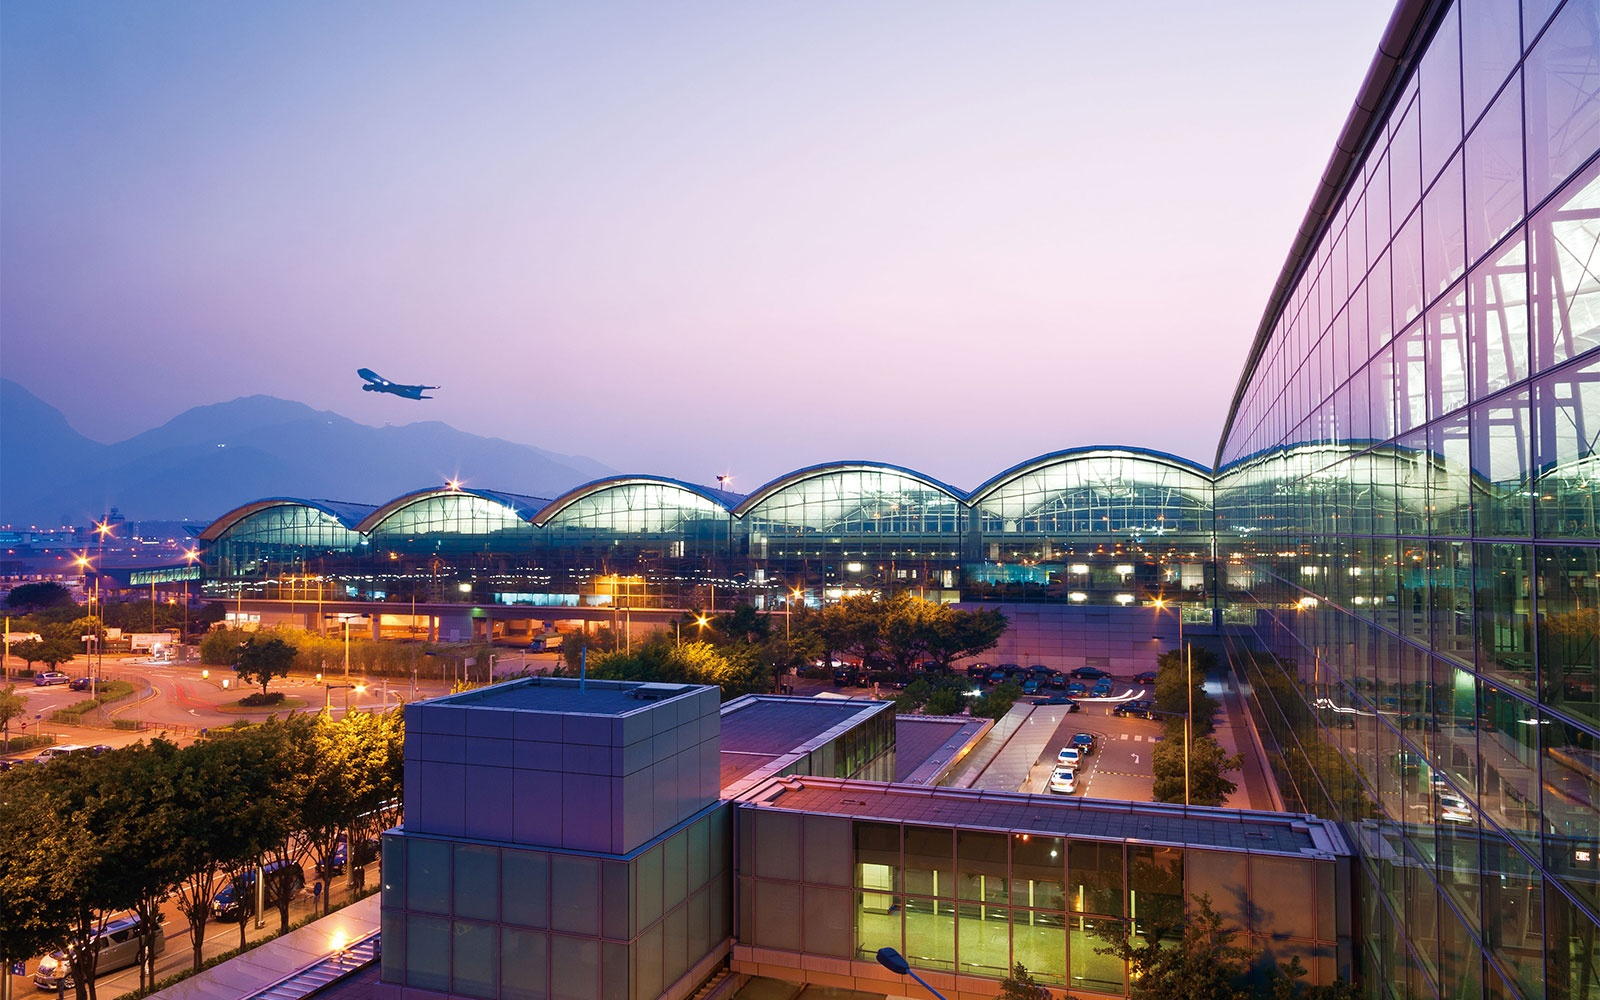 Best International Airport: Hong Kong International Airport